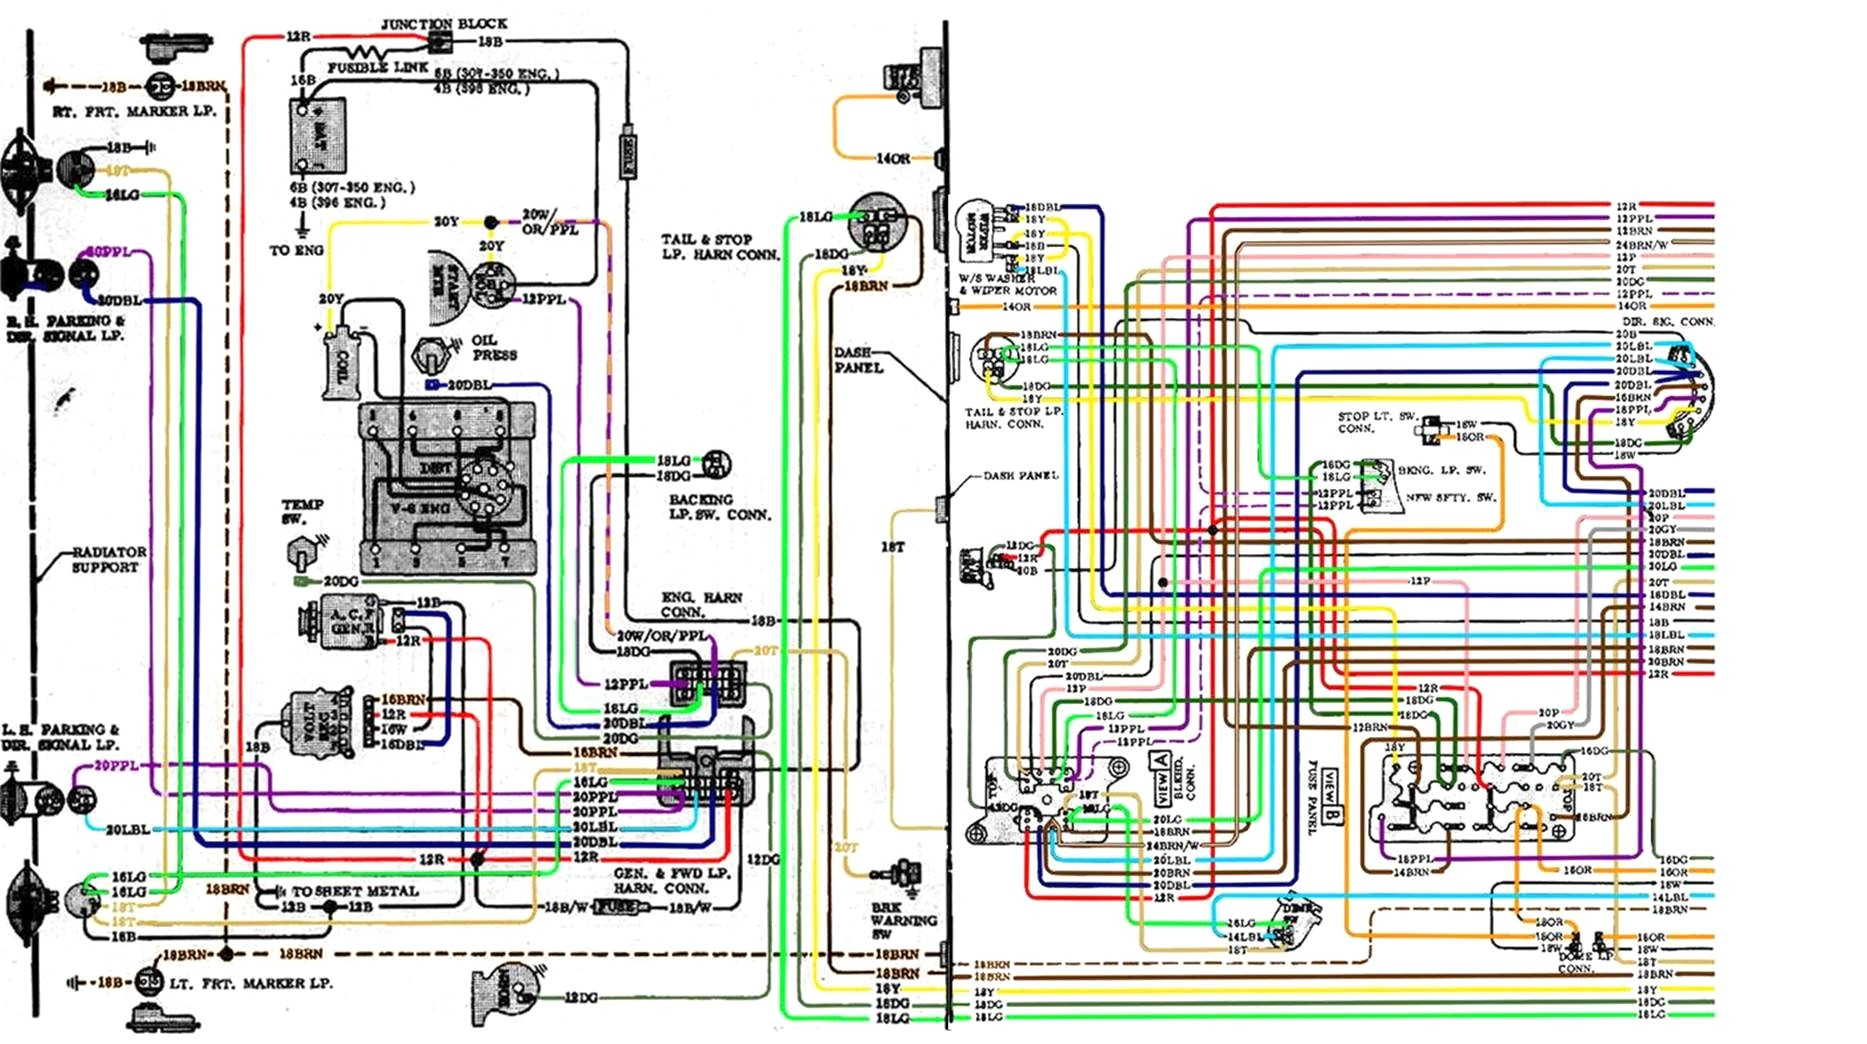 1970 c10 wiring harness wiring diagram completed K20 Wiring Harness